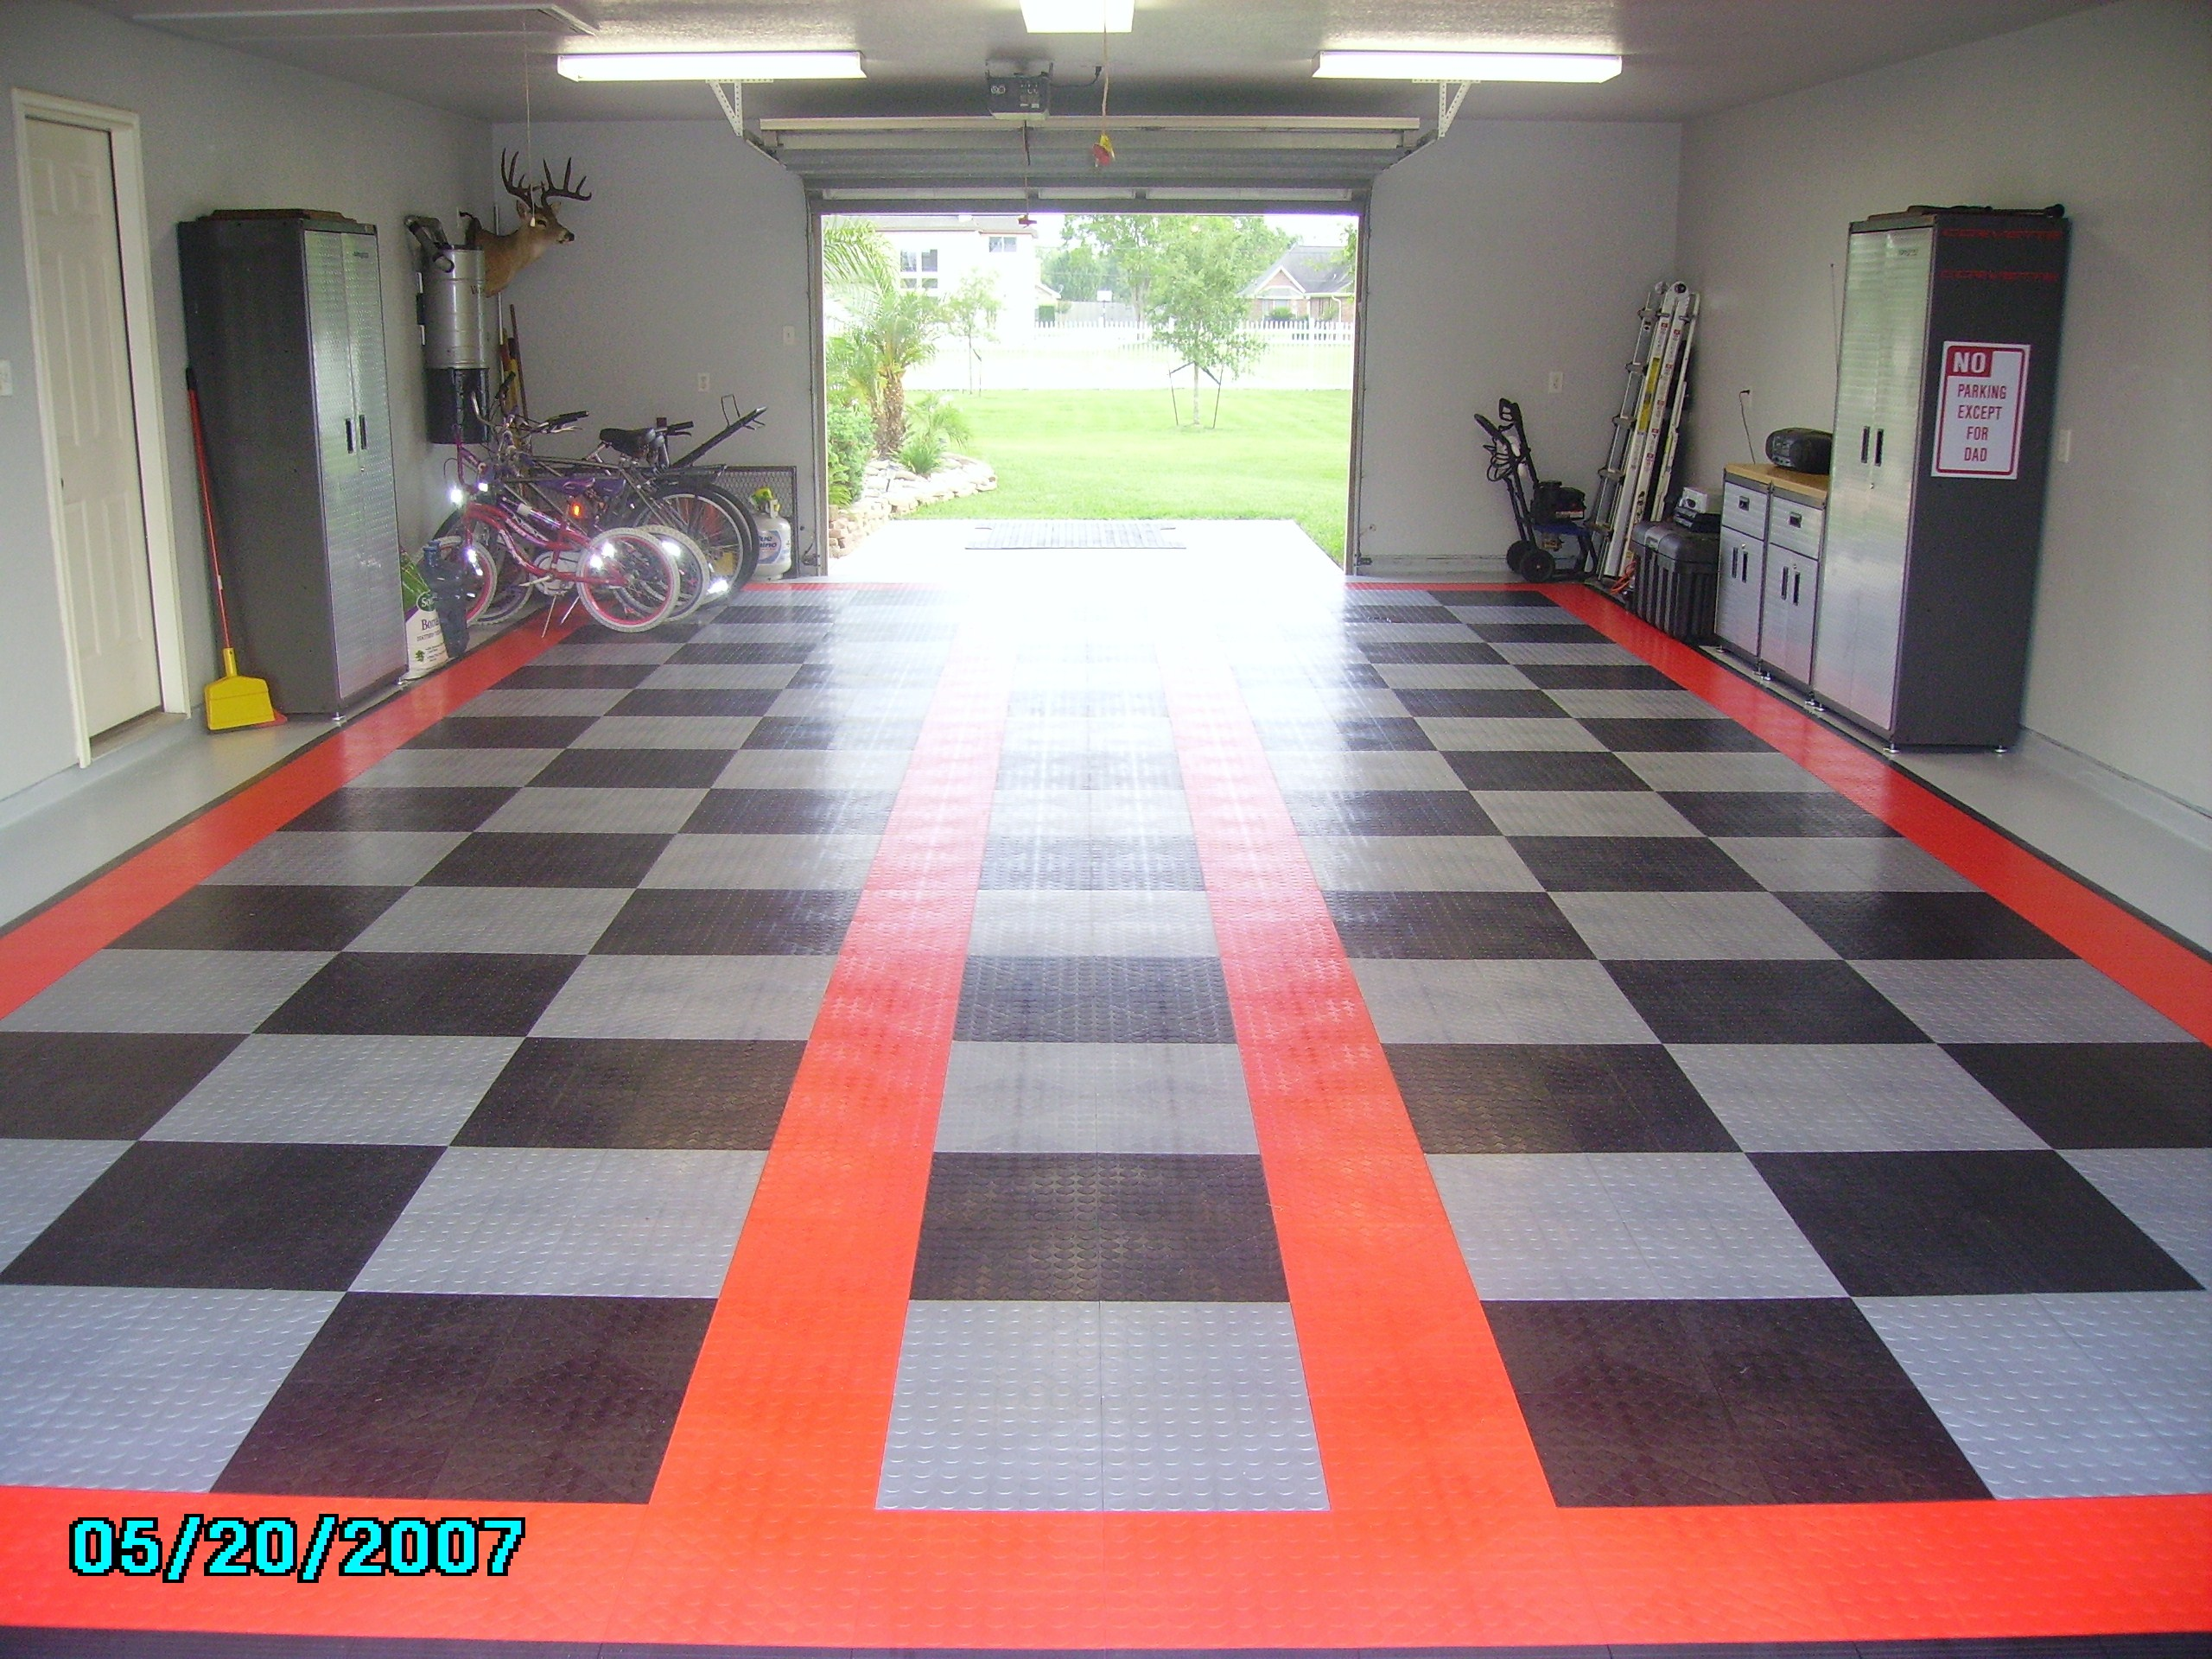 Garage Floor Tiles Or Paint Garage Floor Tile Vs Paint Corvetteforum Chevrolet Corvette